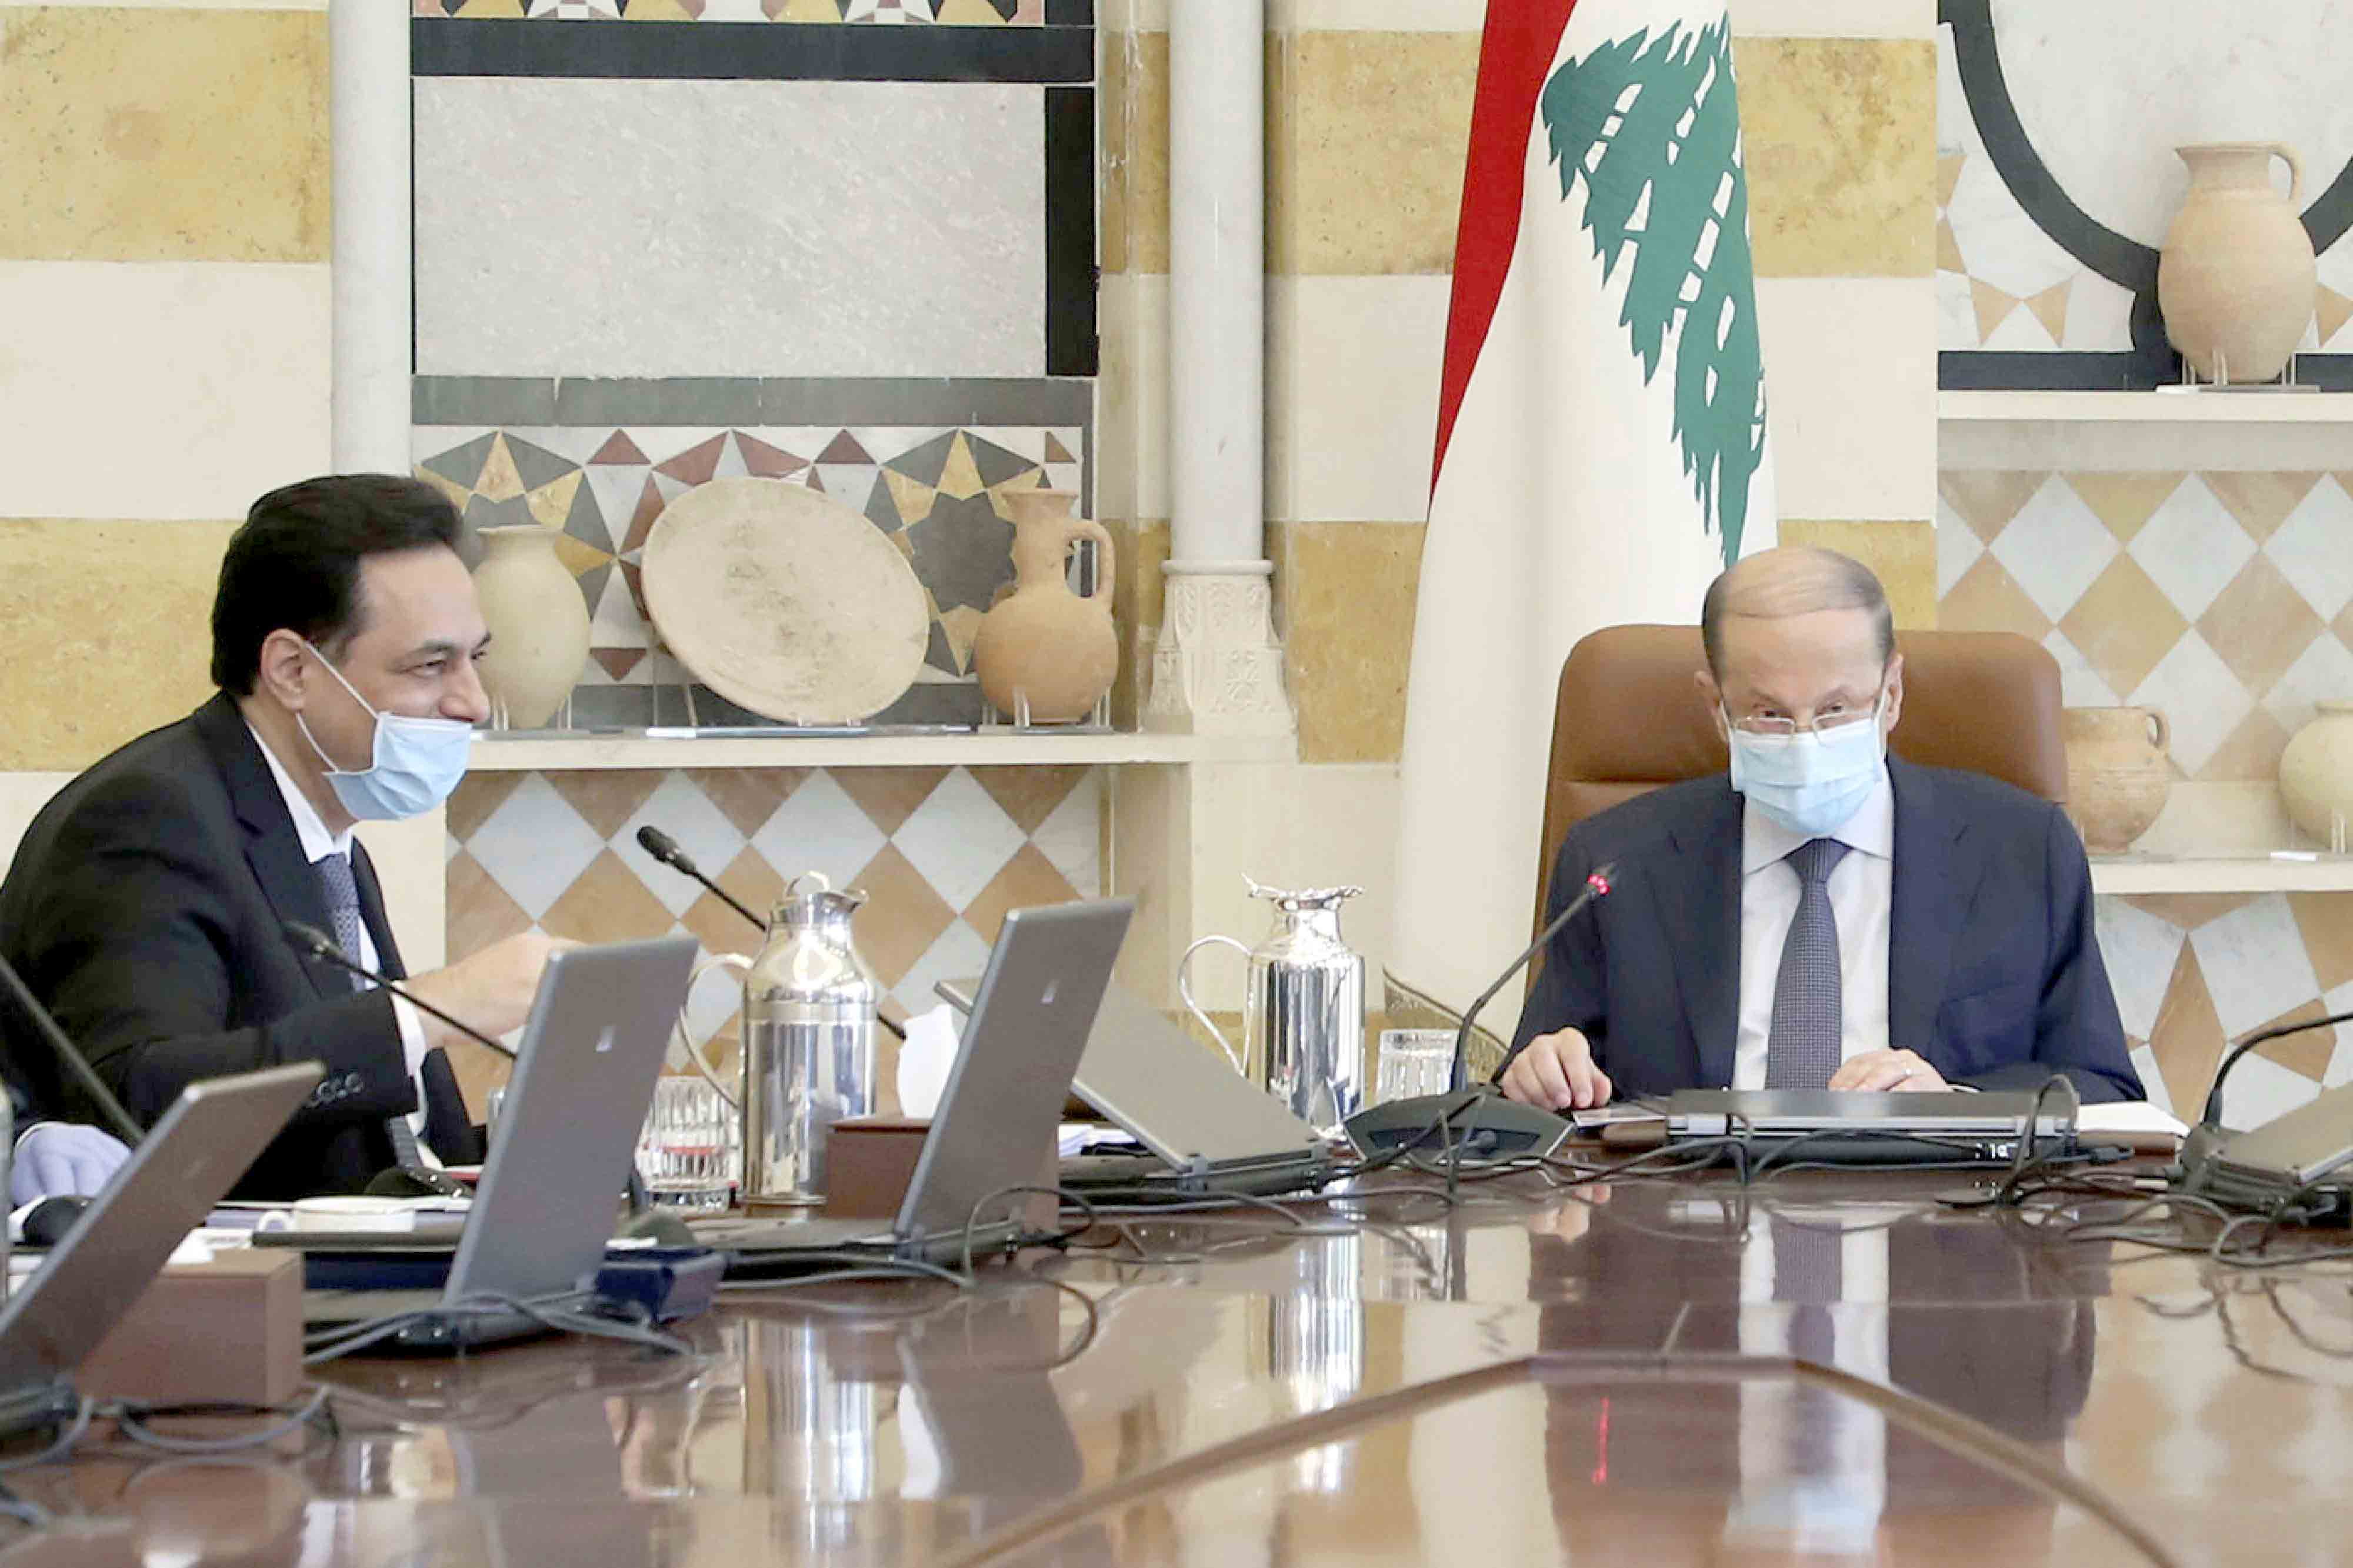 Lebanese President Michel Aoun (R) and Prime Minister Hassan Diab attend a cabinet meeting at the presidential palace in Baabda, east of Beirut, March 19. (AP)